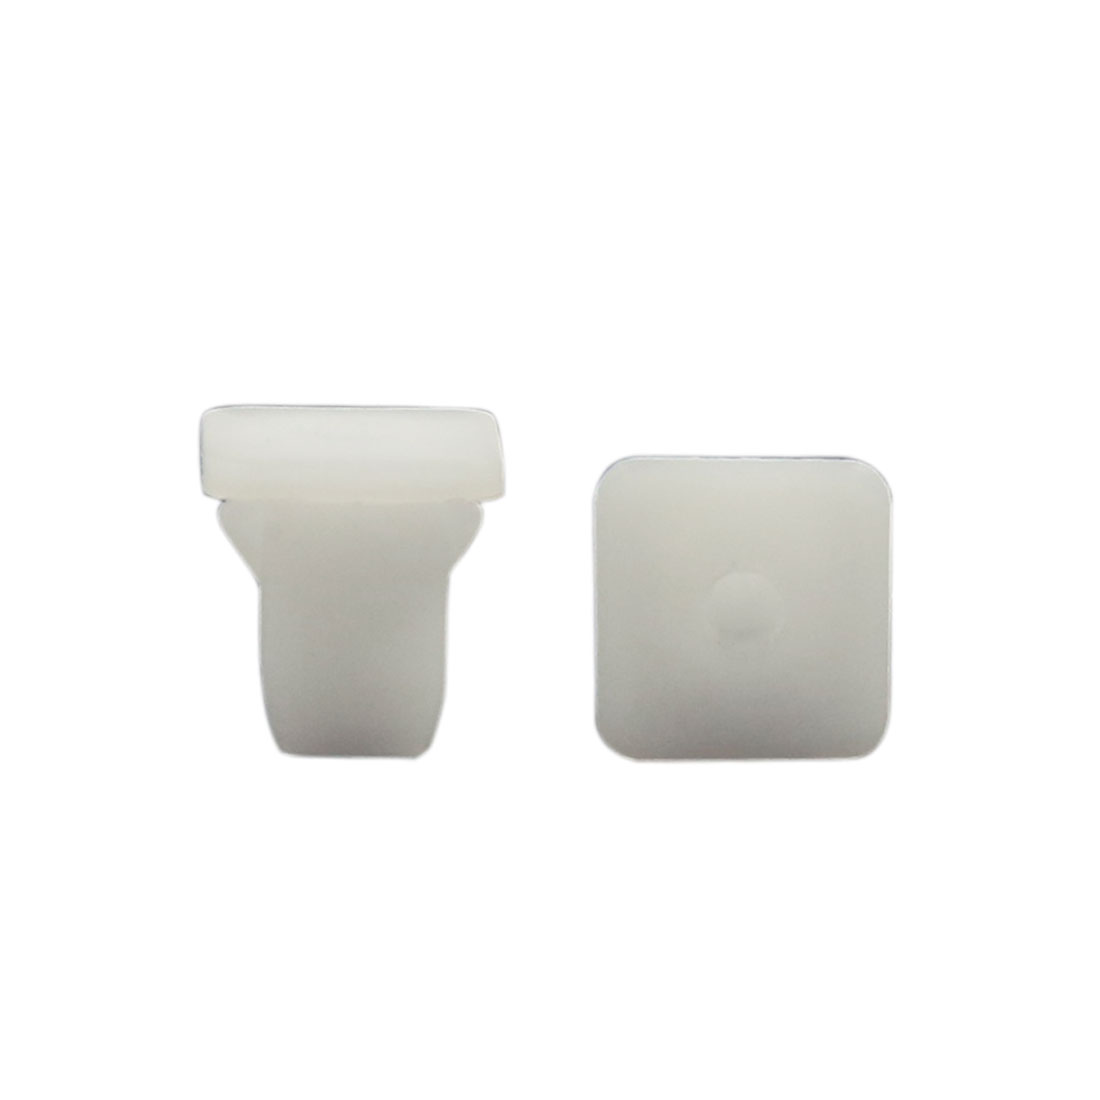 100 Pcs Square Plastic Rivets Retainer Clip White for Bumper Fender 14mm Hole